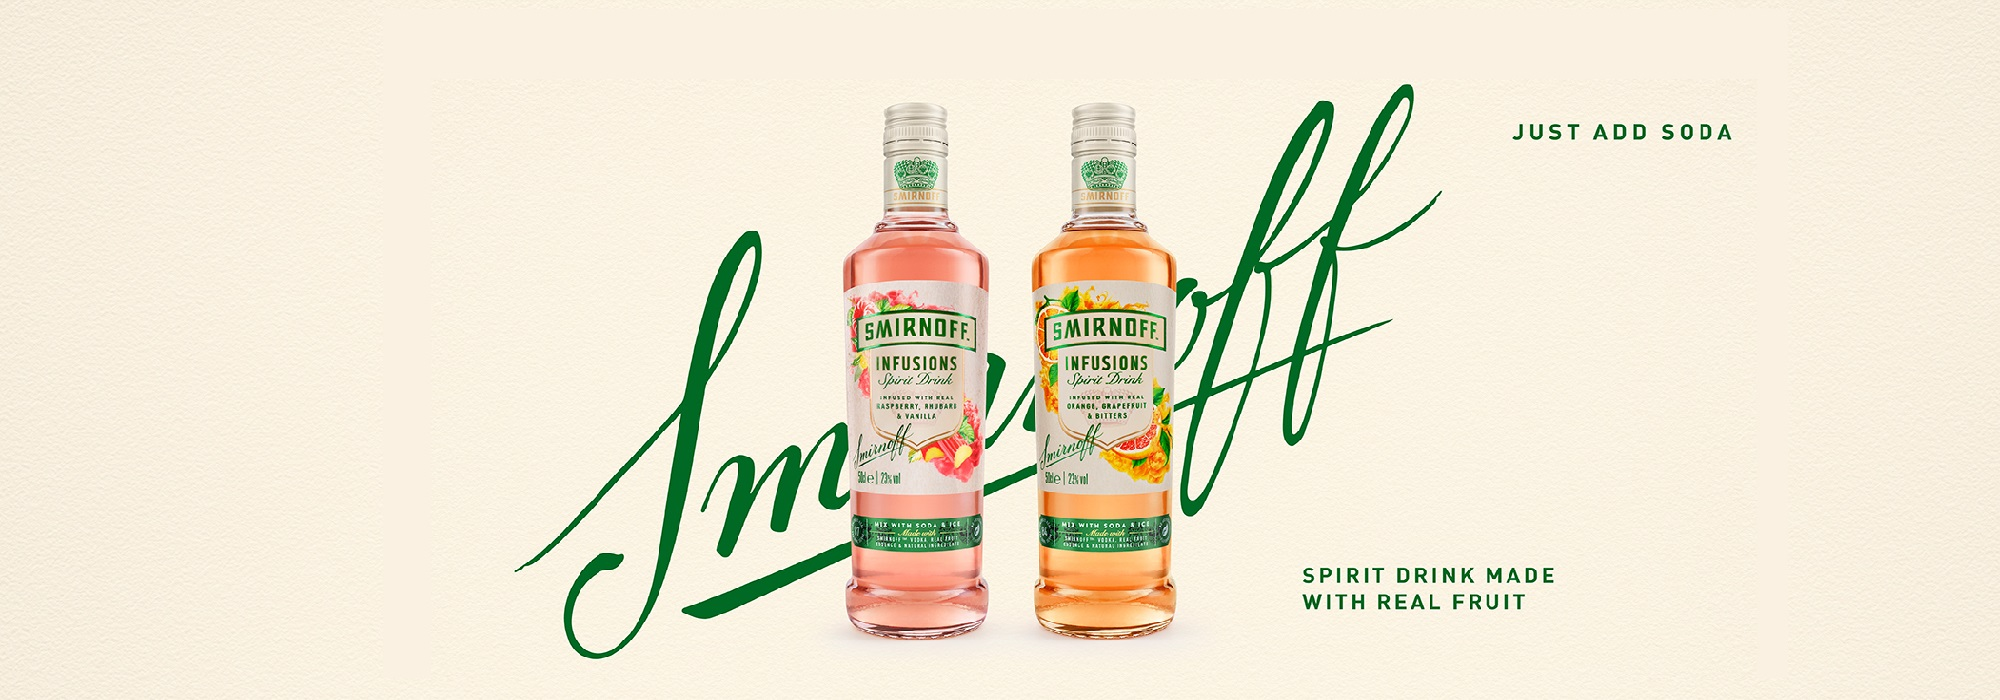 Slide - Try NEW Smirnoff Infusions